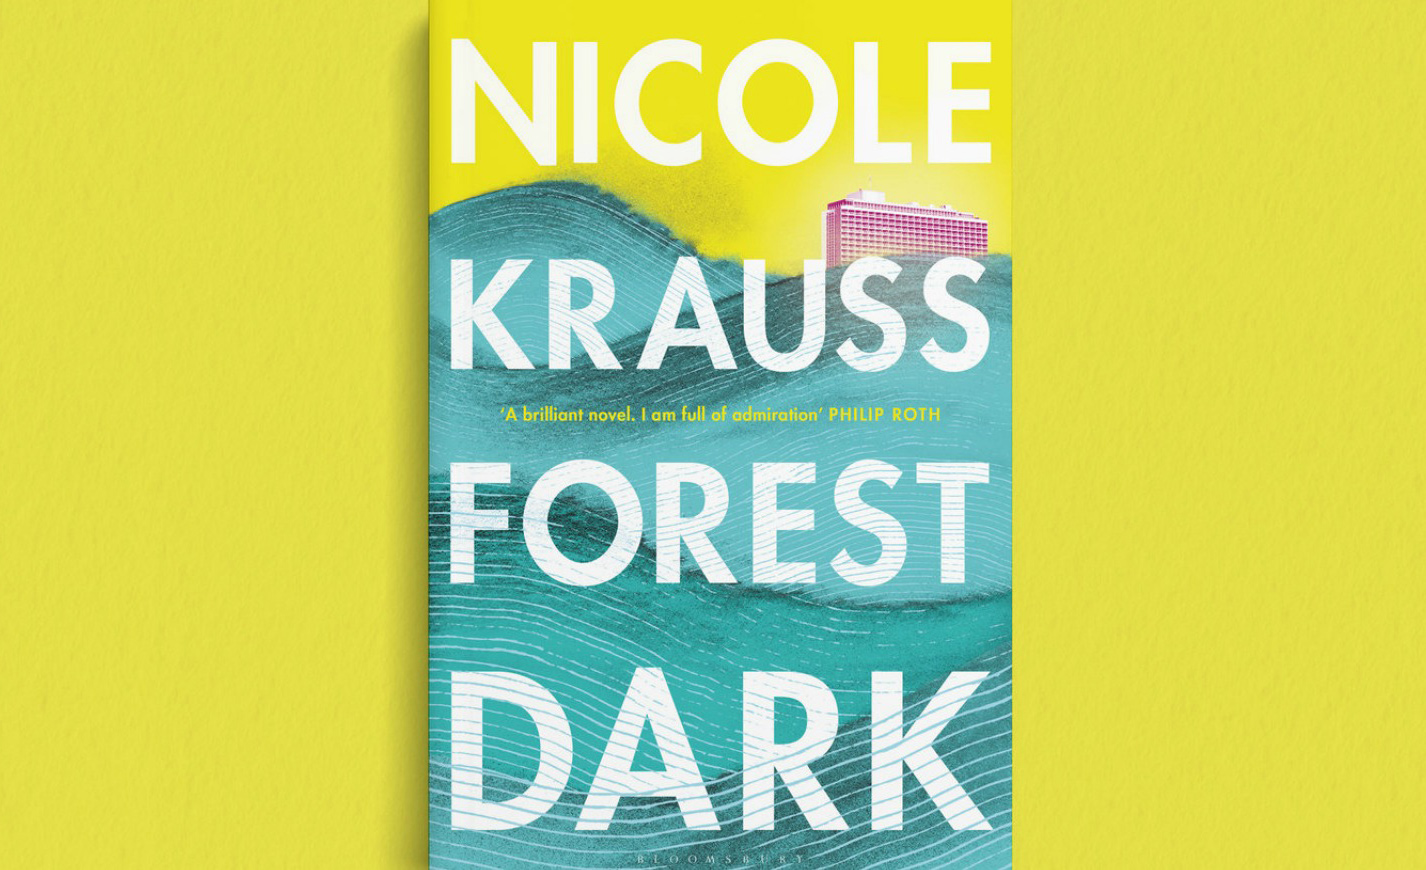 Nicole Krauss's New Novel Plants a Forest. It Fails to Thrive.